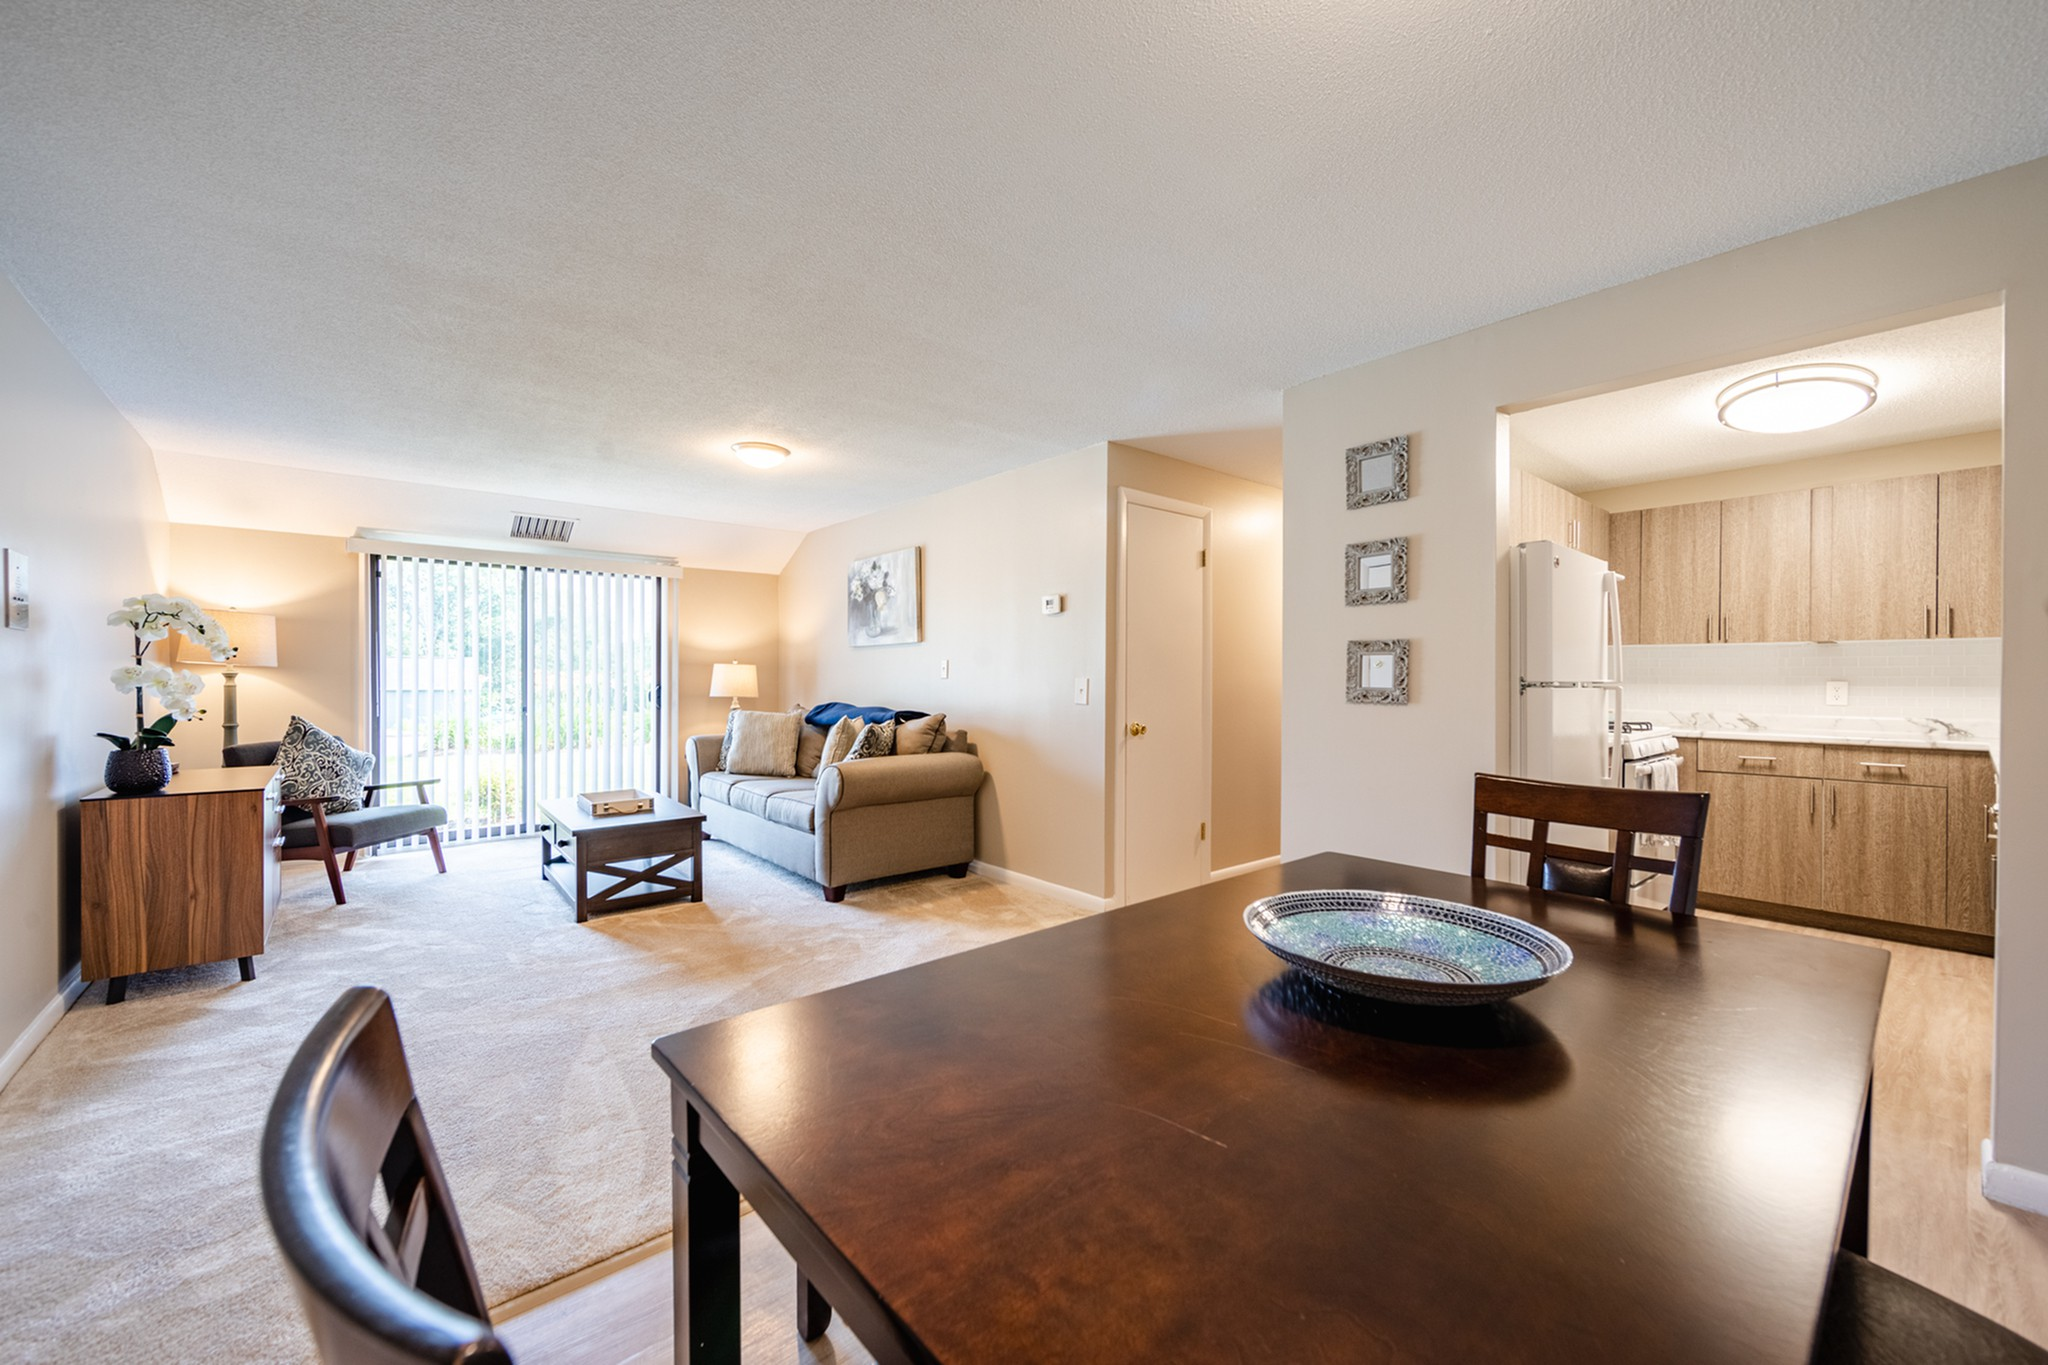 Apartments Near Merrimack Princeton Bradford for Merrimack College Students in North Andover, MA